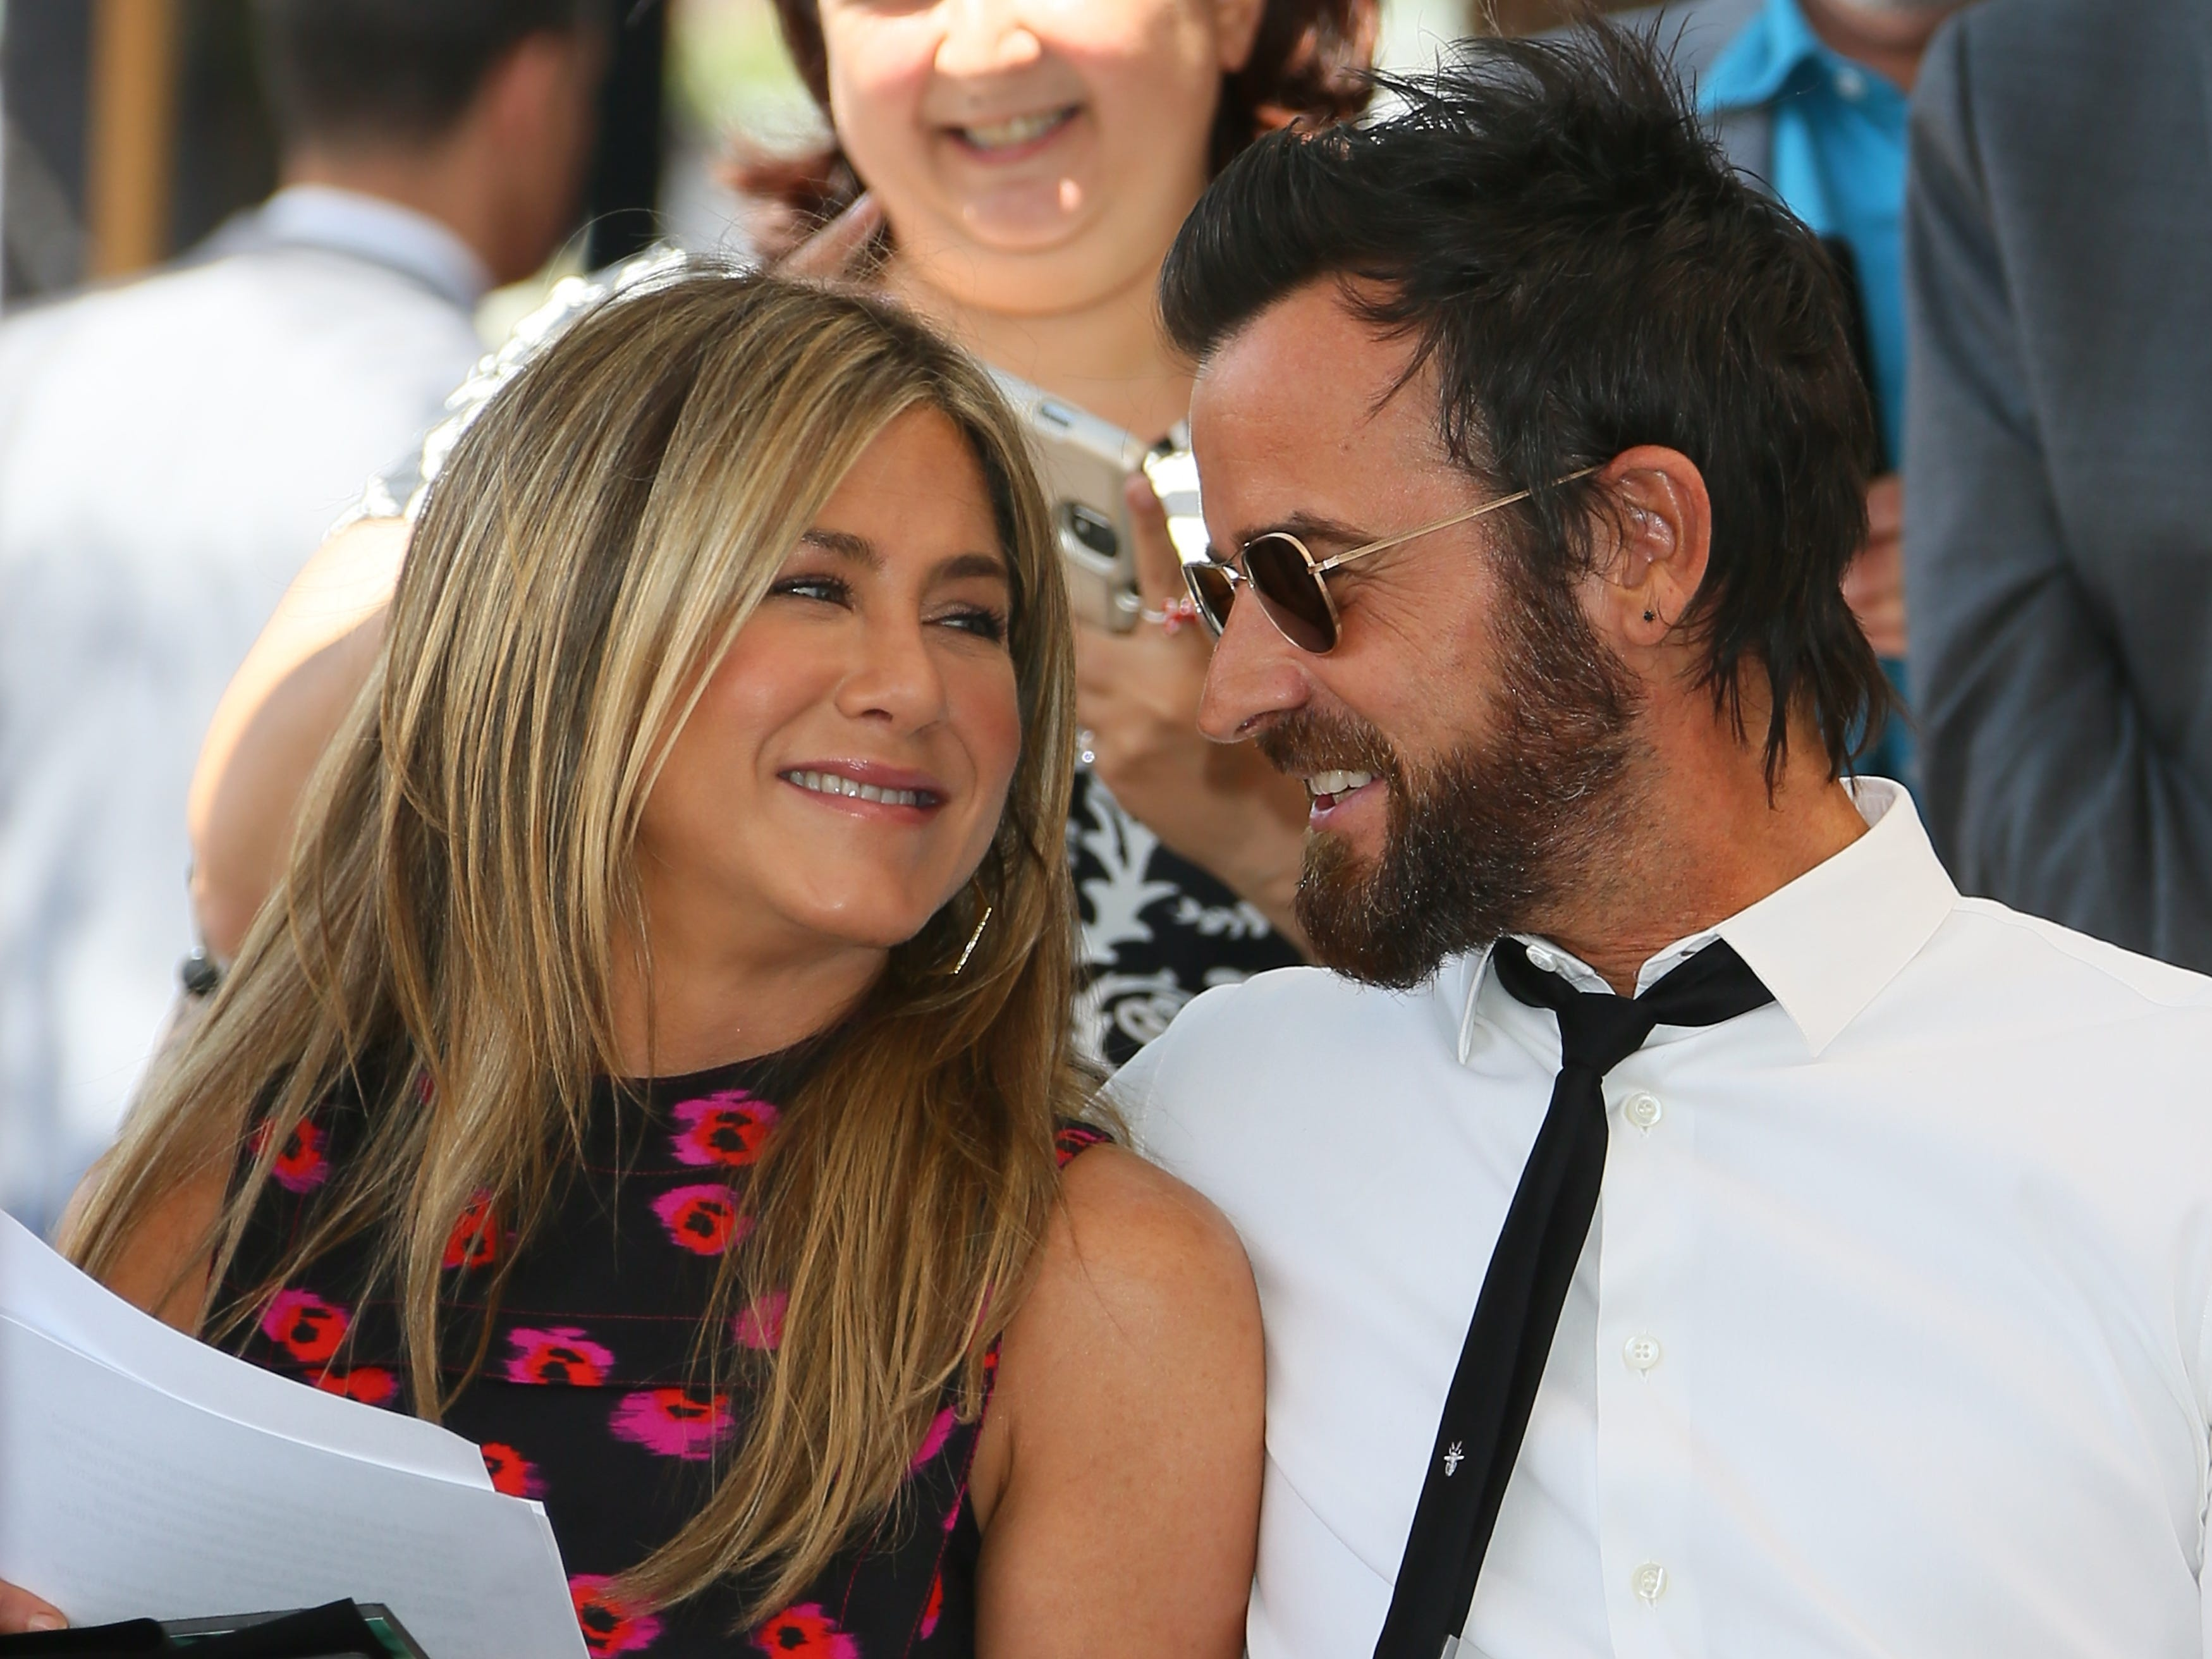 """In February 2018, Aniston and Theroux announced they were separating, a decision they said they reached at the end of the previous year. """"We are two best friends who have decided to part ways as a couple, but look forward to continuing our cherished friendship,"""" they said in a joint statement."""